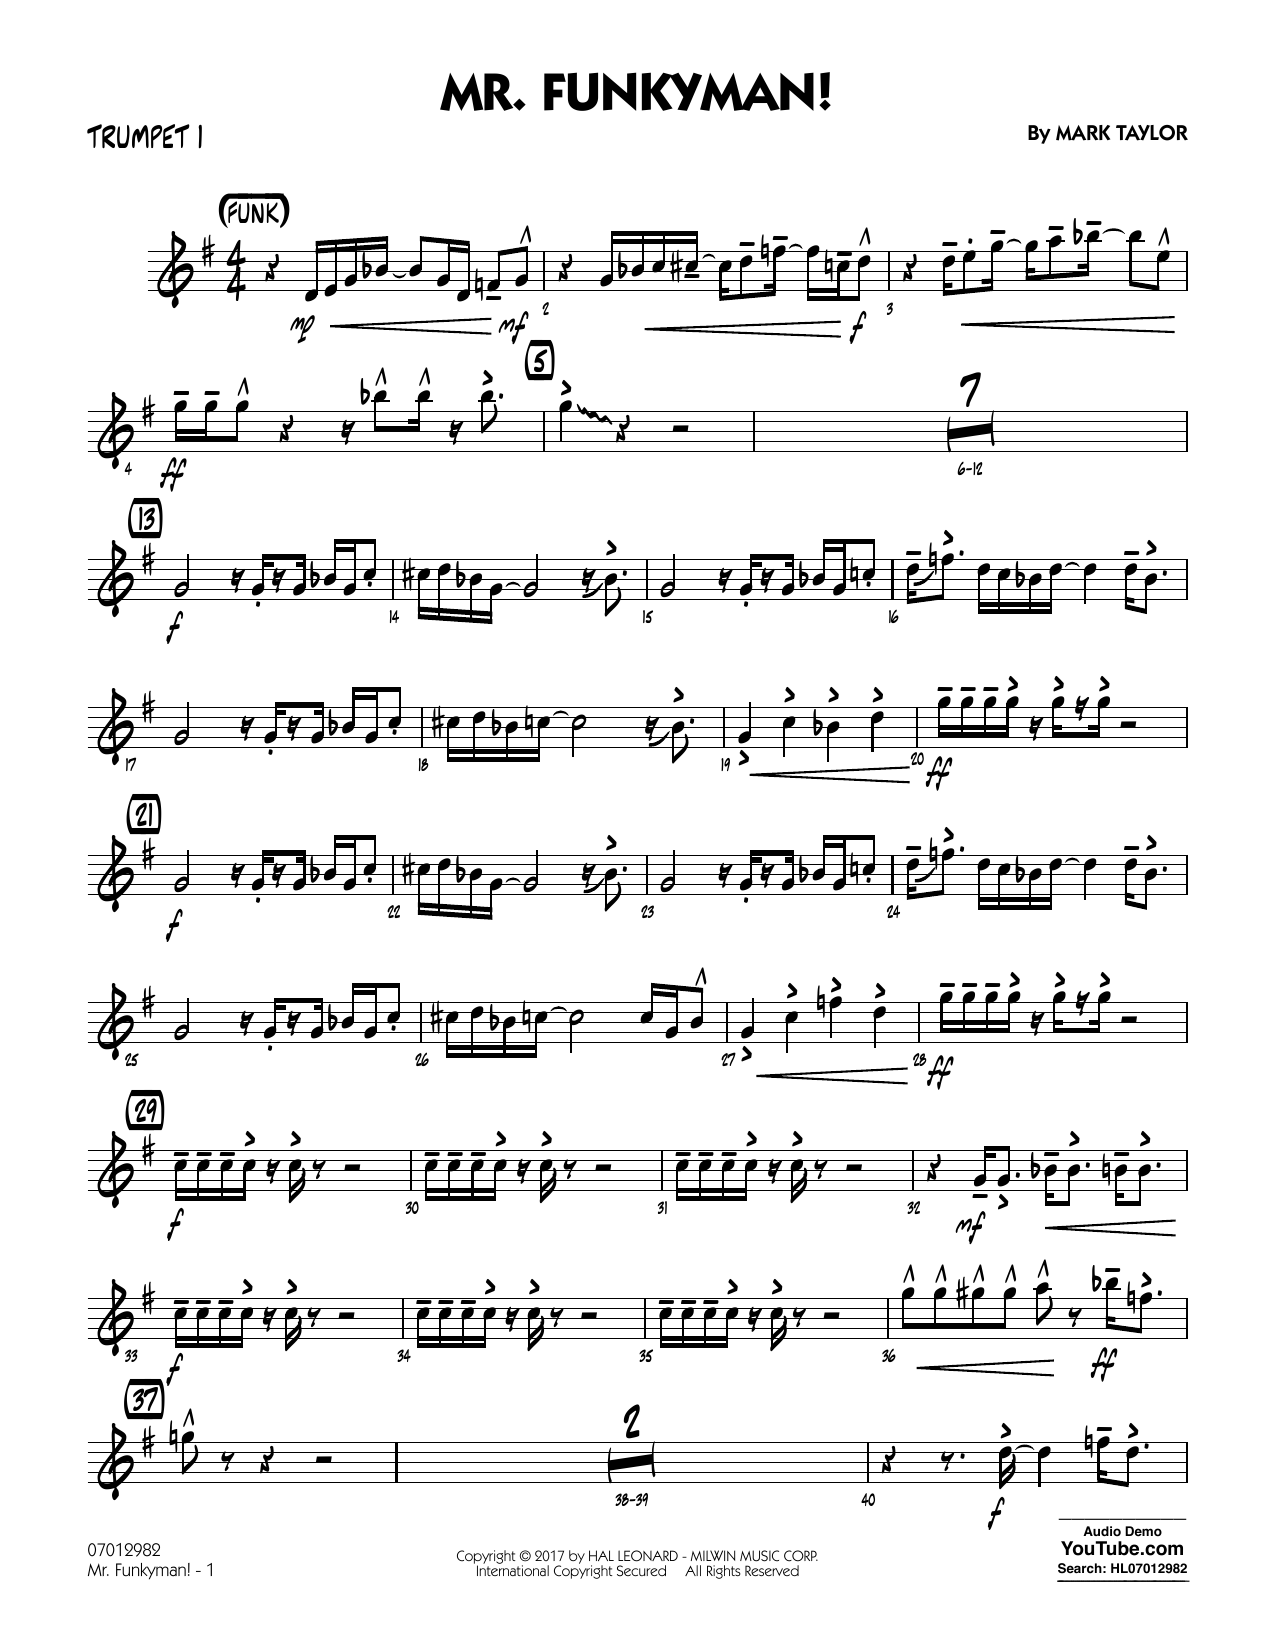 Mark Taylor Mr. Funkyman! - Trumpet 1 sheet music notes and chords. Download Printable PDF.